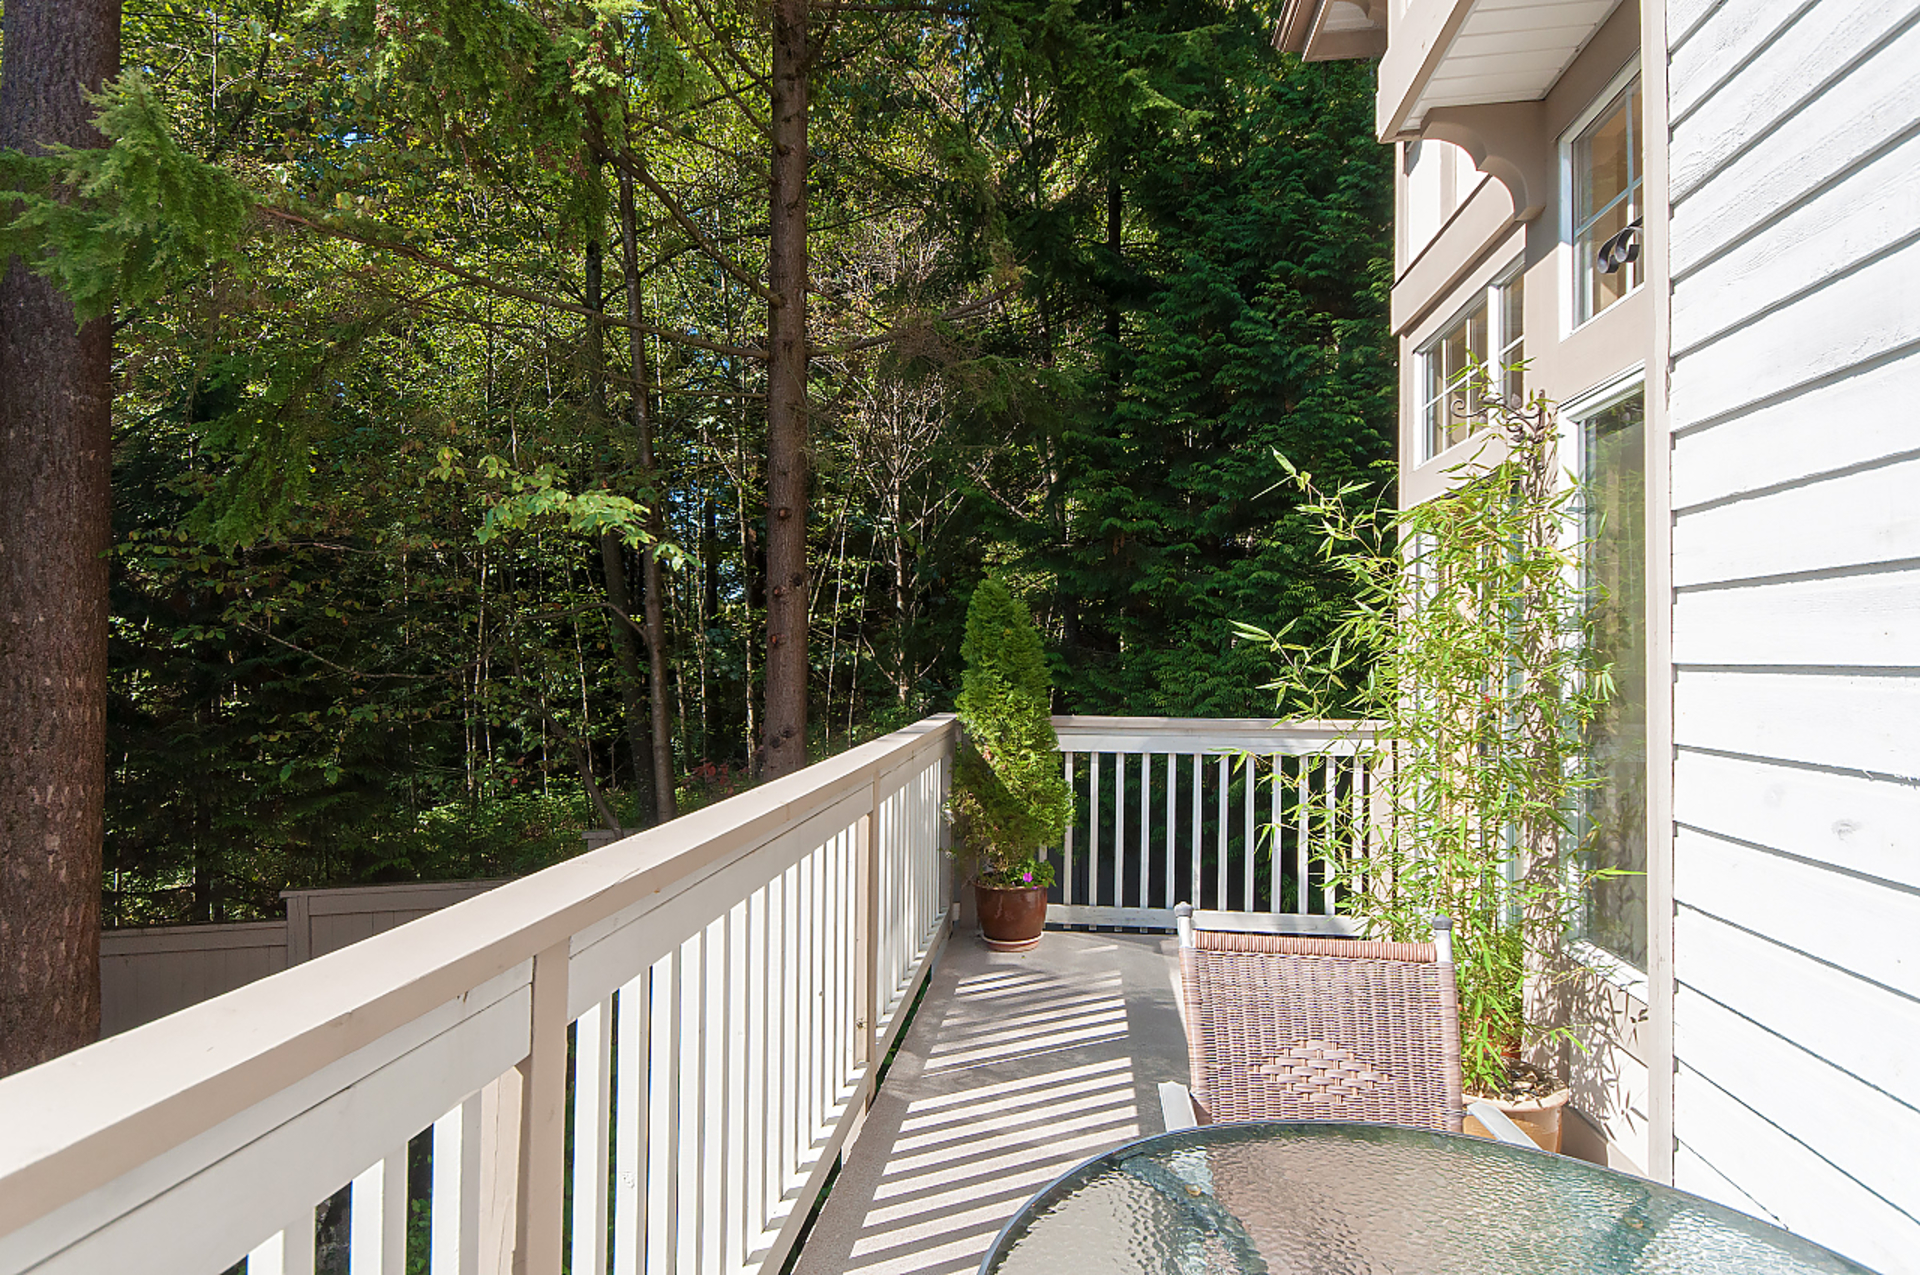 028 at 20 - 1 Aspenwood Drive, Heritage Woods PM, Port Moody